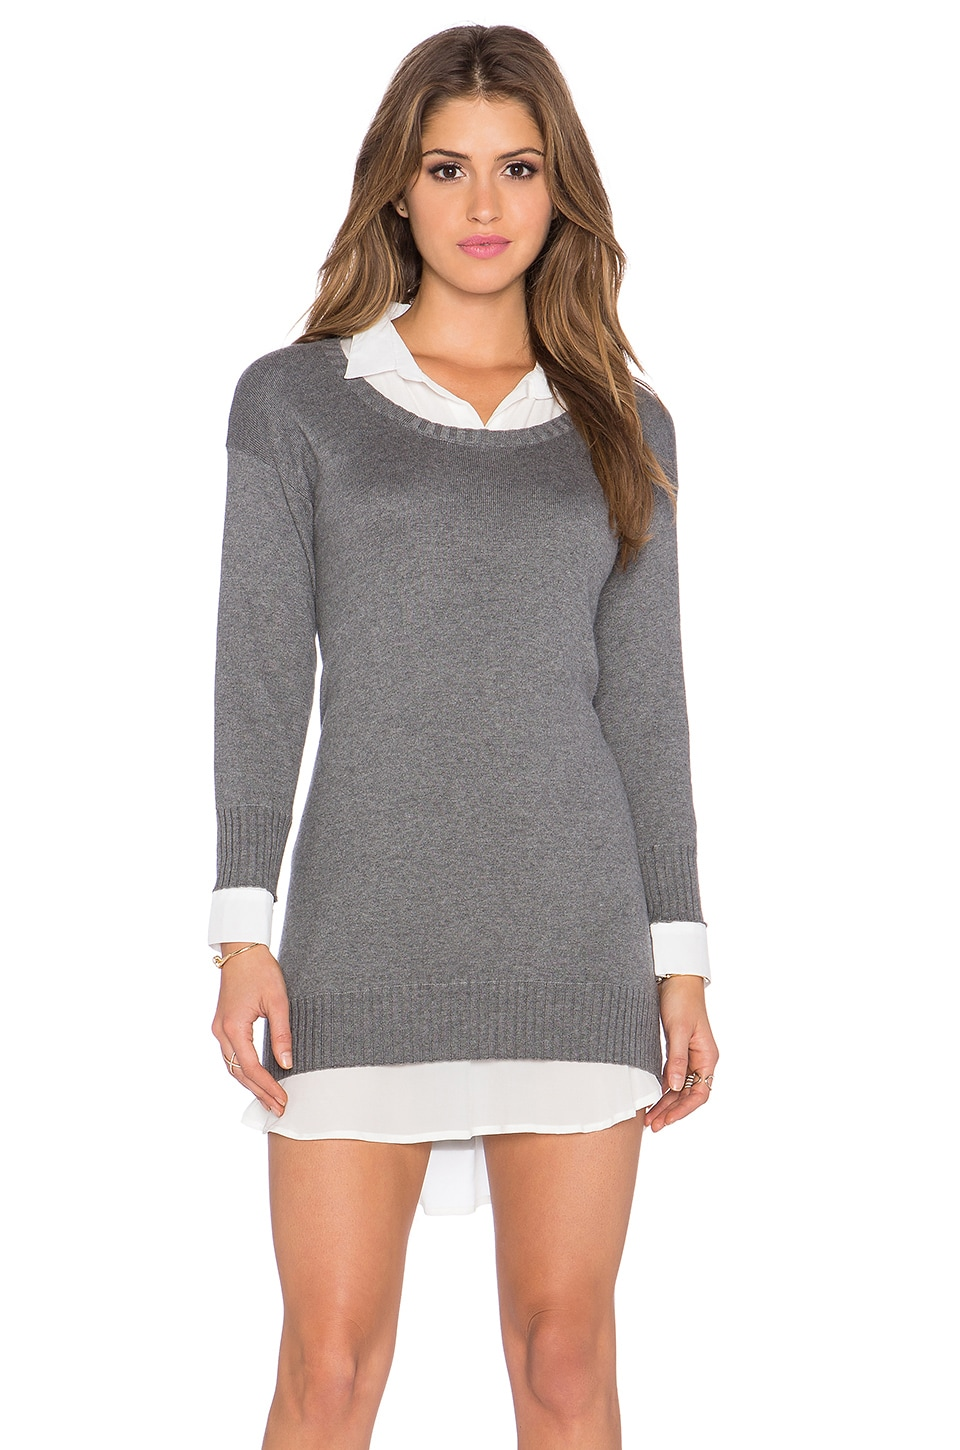 Central Park West Cambridge Layered Sweater Dress in Charcoal & Solid White